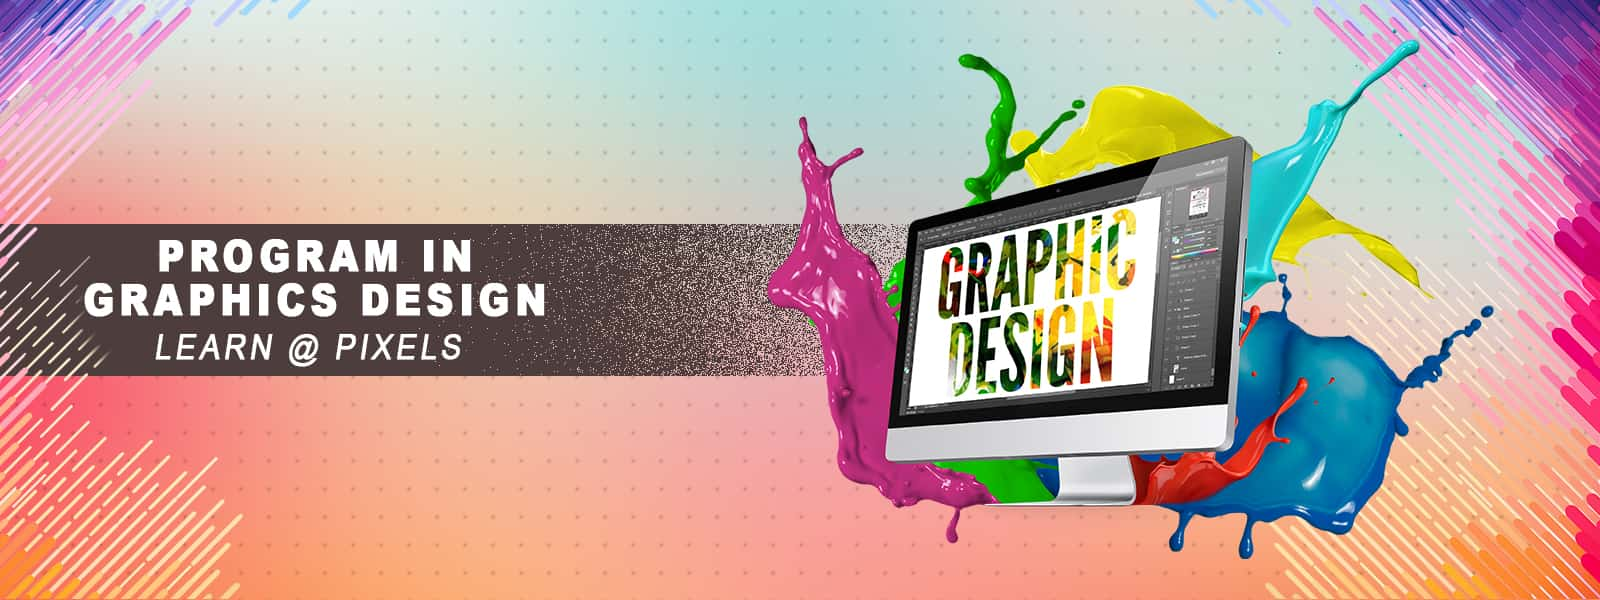 program in graphics design